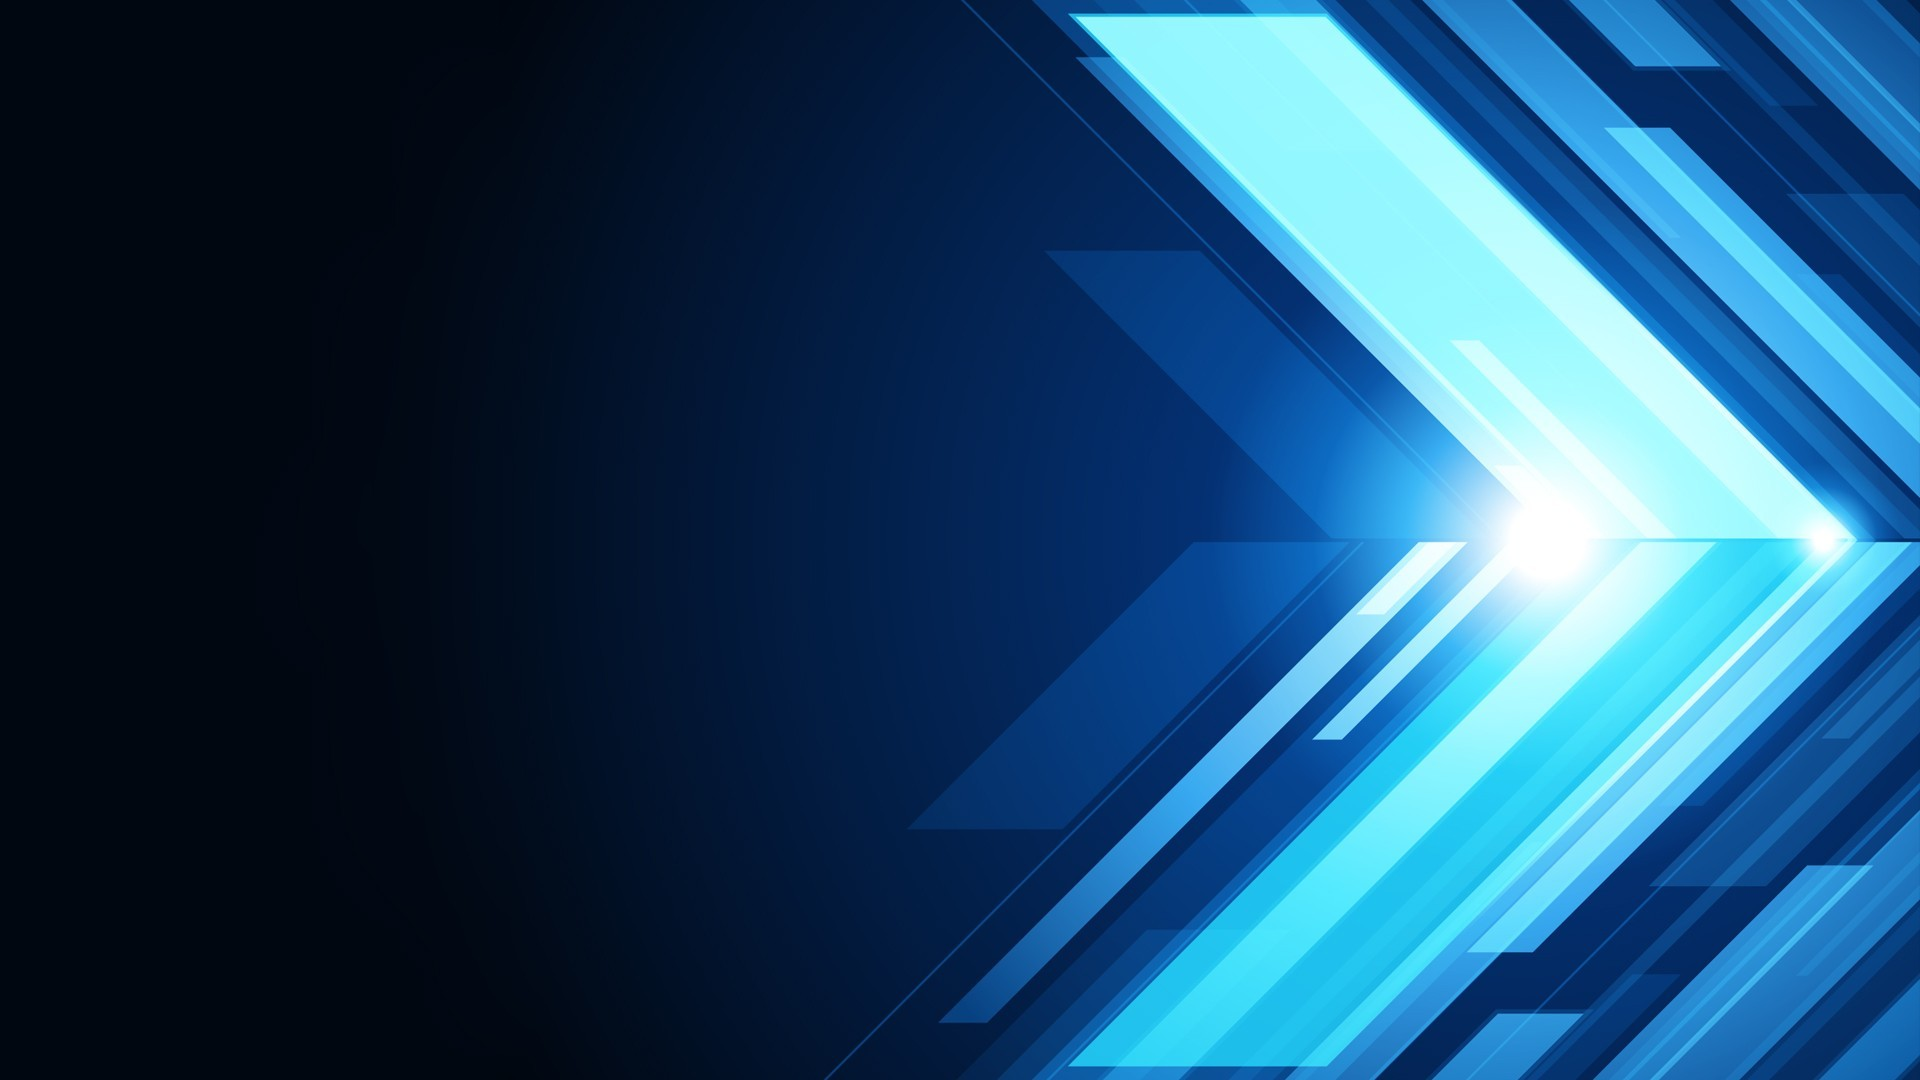 blue and green graphic wallpaper - photo #16